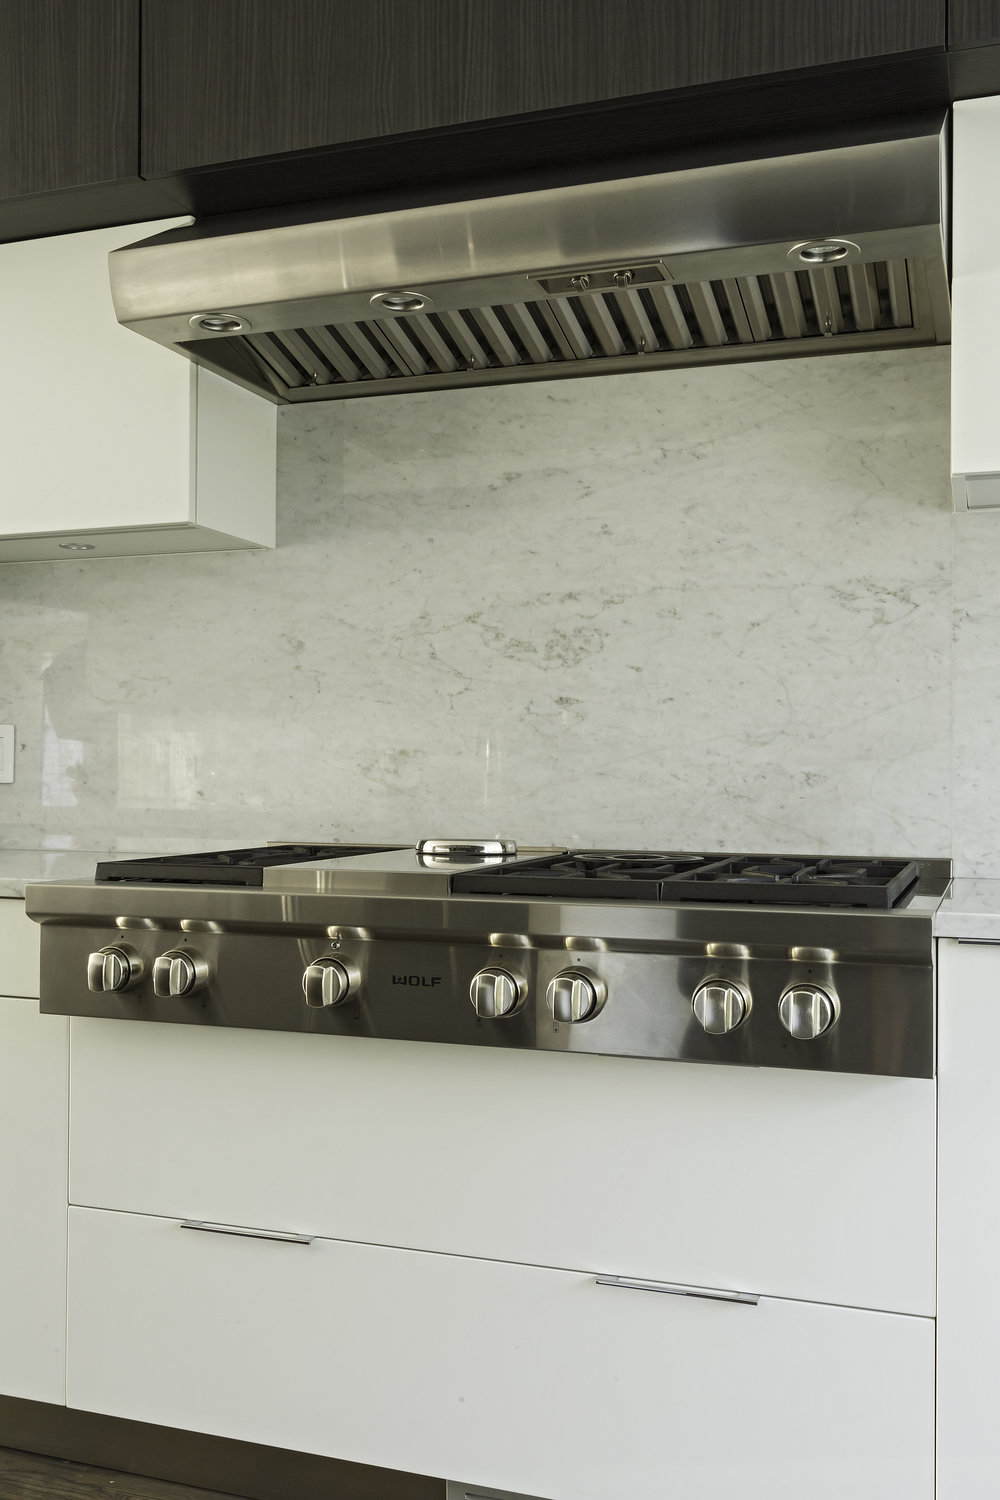 Contemporary style kitchen with range and traditional range hood